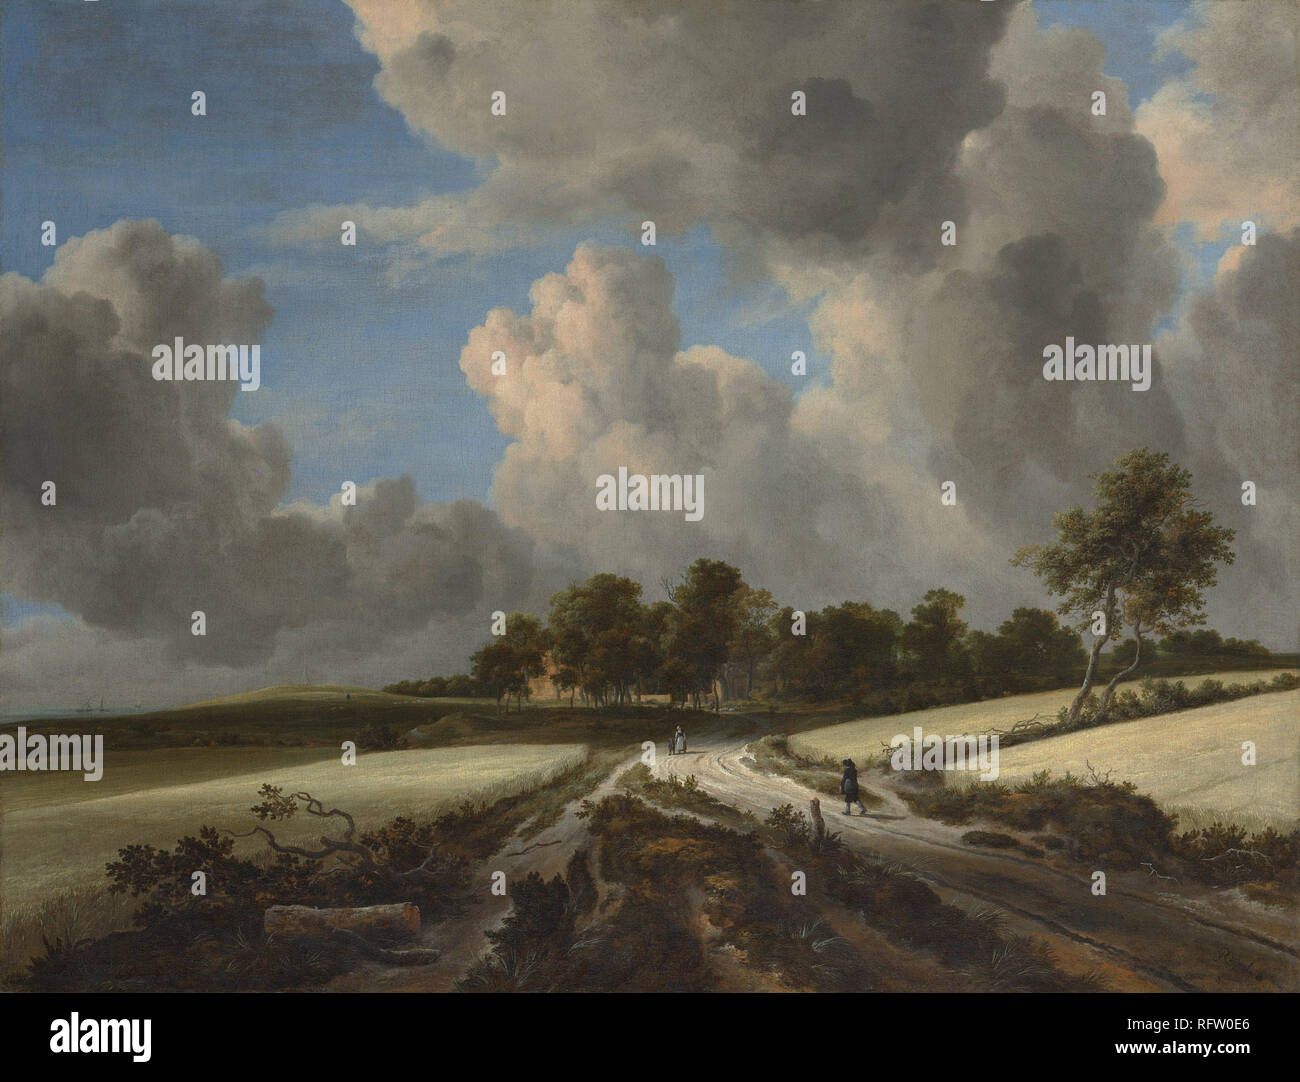 Working Title/Artist: Jacob van Ruisdael, Wheat Fields  Department: European Paintings Culture/Period/Location:  HB/TOA Date Code:  Working Date:  photography by mma, DP145911  touched by film and media (jnc) 9_30_08 - Stock Image